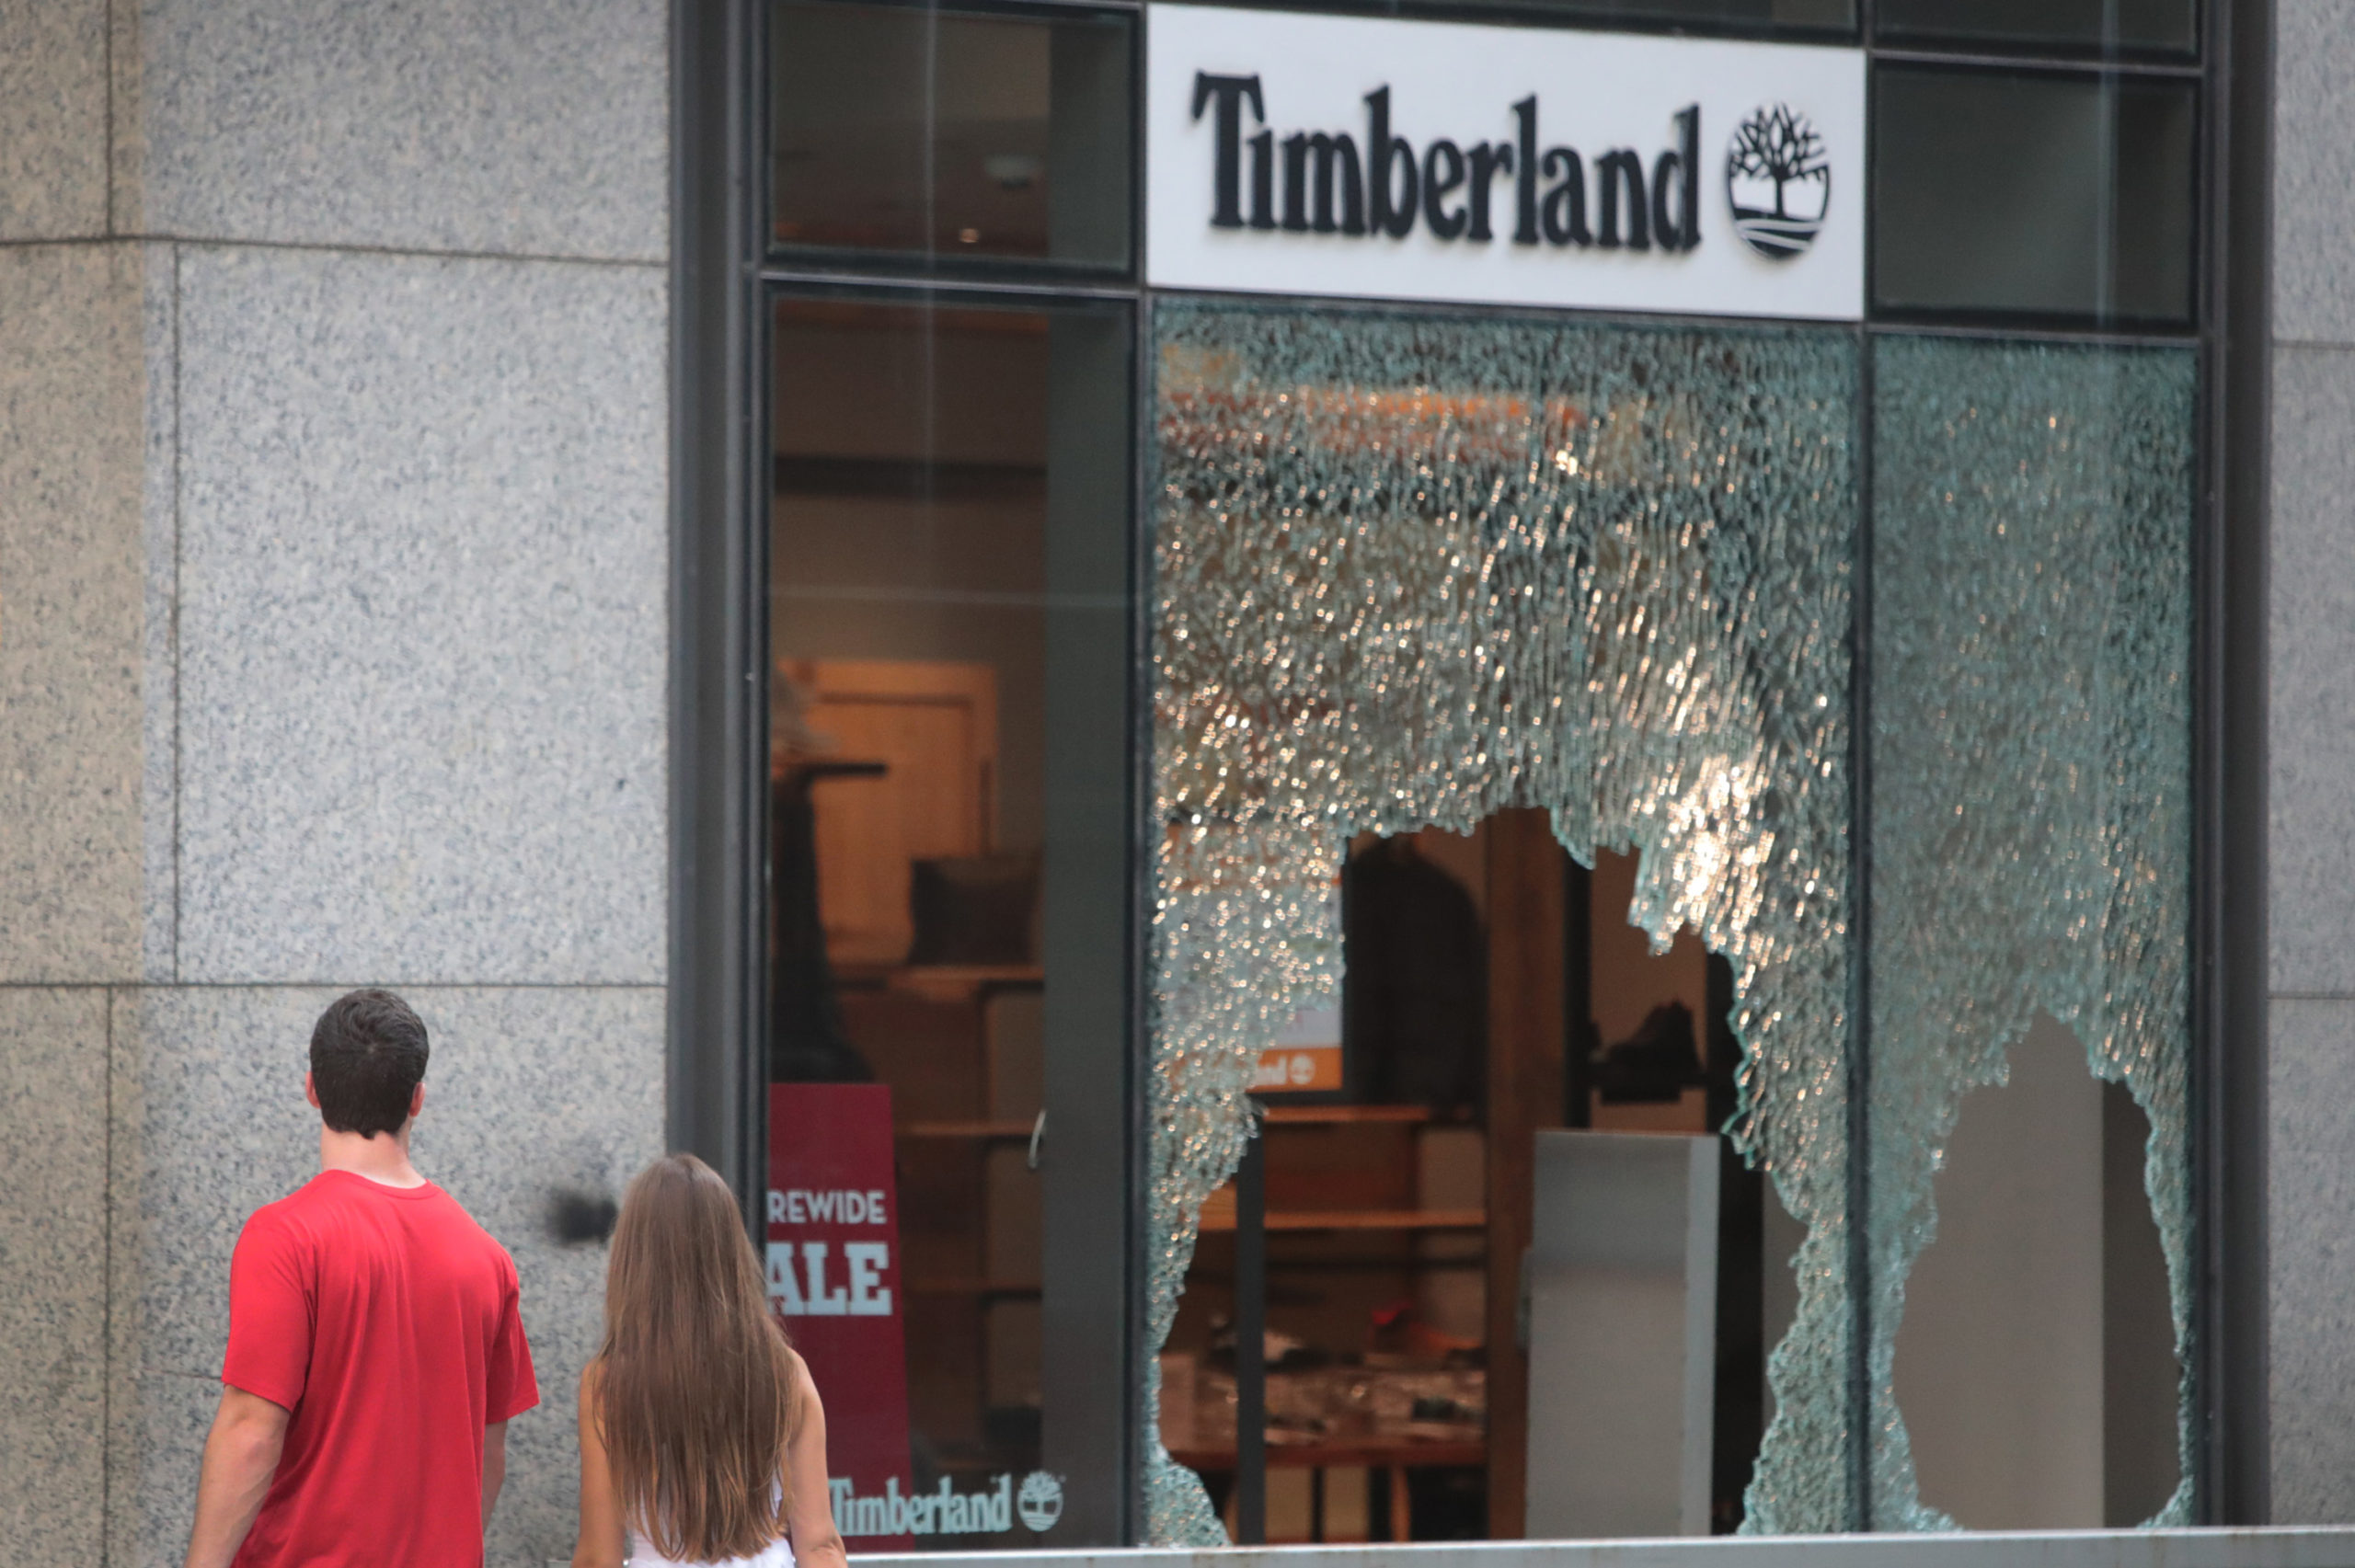 CHICAGO, ILLINOIS - AUGUST 10: A window is shattered at a Timberland store along Michigan Avenue after it was looted on August 10, 2020 in Chicago, Illinois. Police made several arrests during the night as widespread looting was reported downtown and other areas of the city. (Photo by Scott Olson/Getty Images)